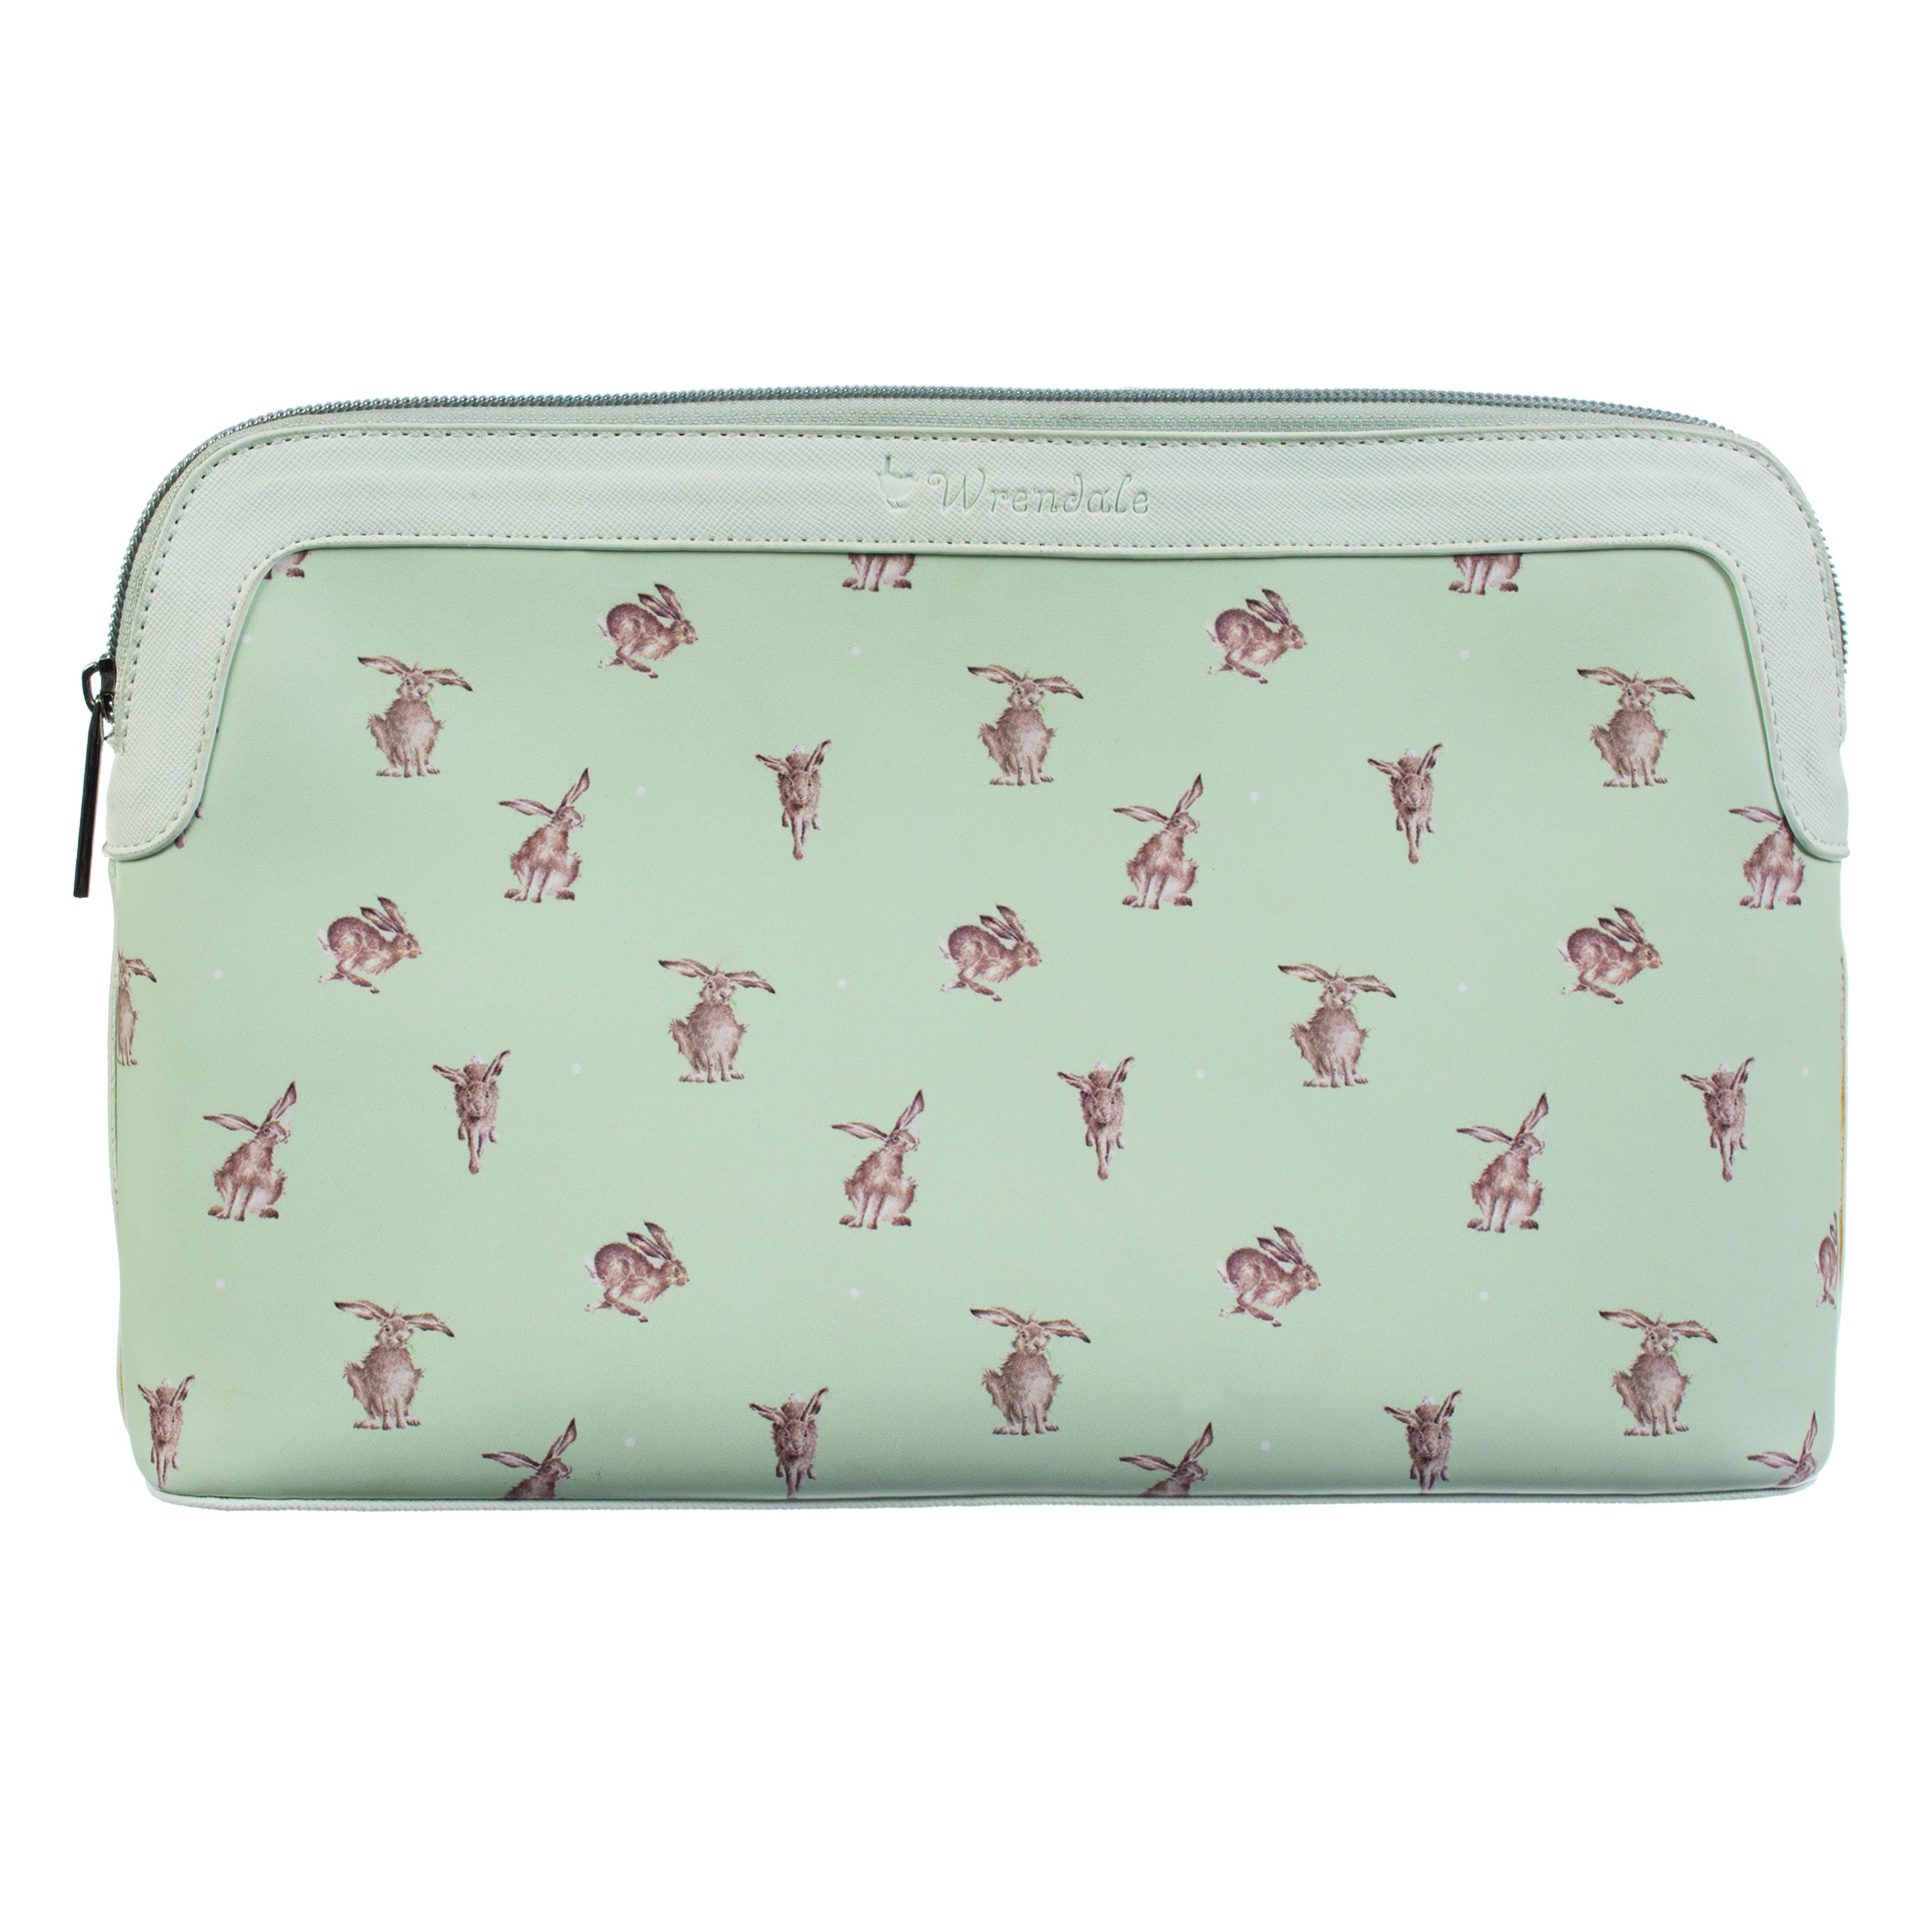 WRENDALE COSMETIC BAG LARGE - HARE FRONT